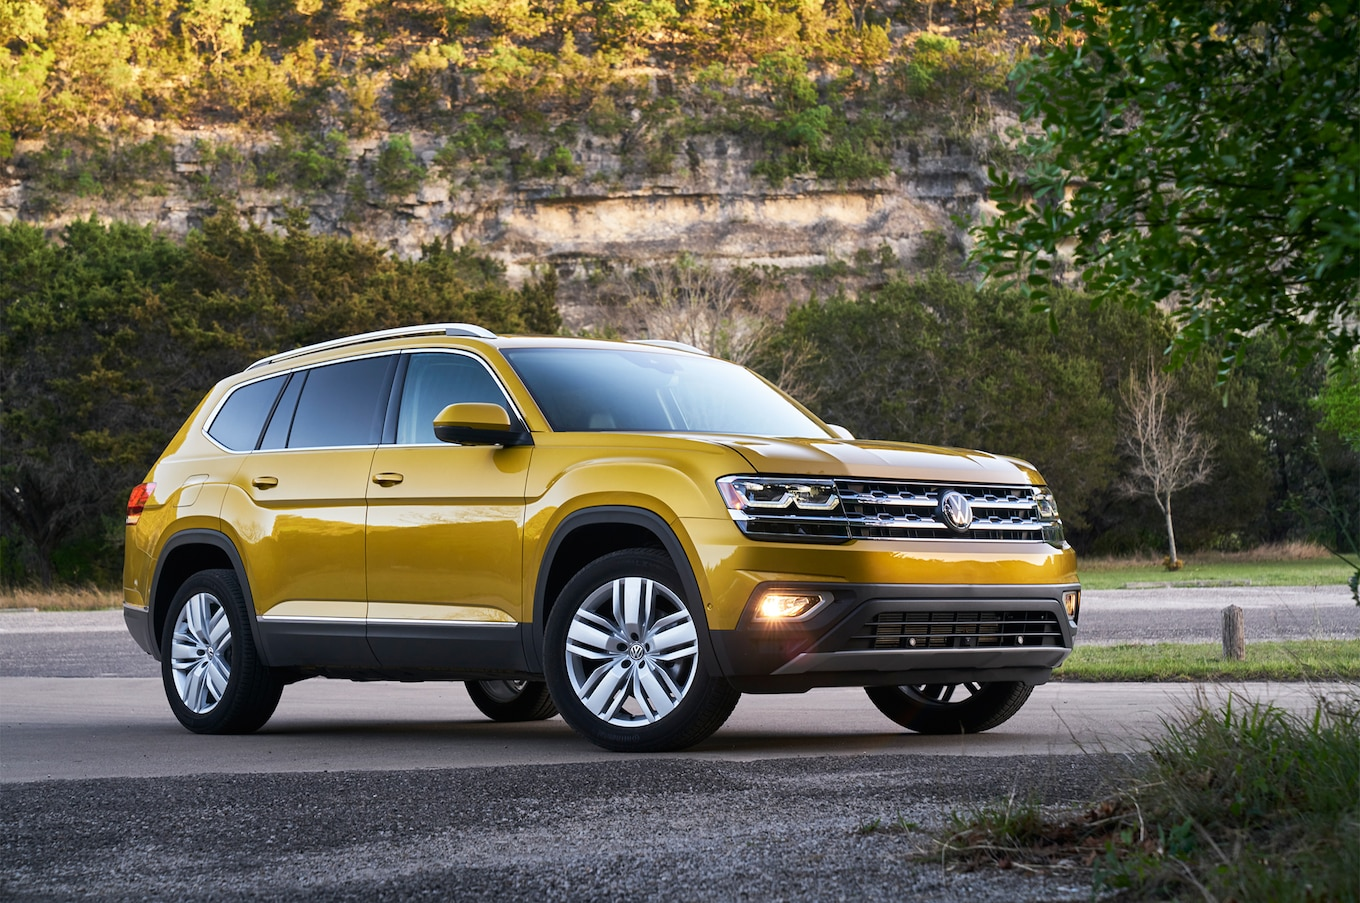 2018 Volkswagen Atlas front three quarter 05